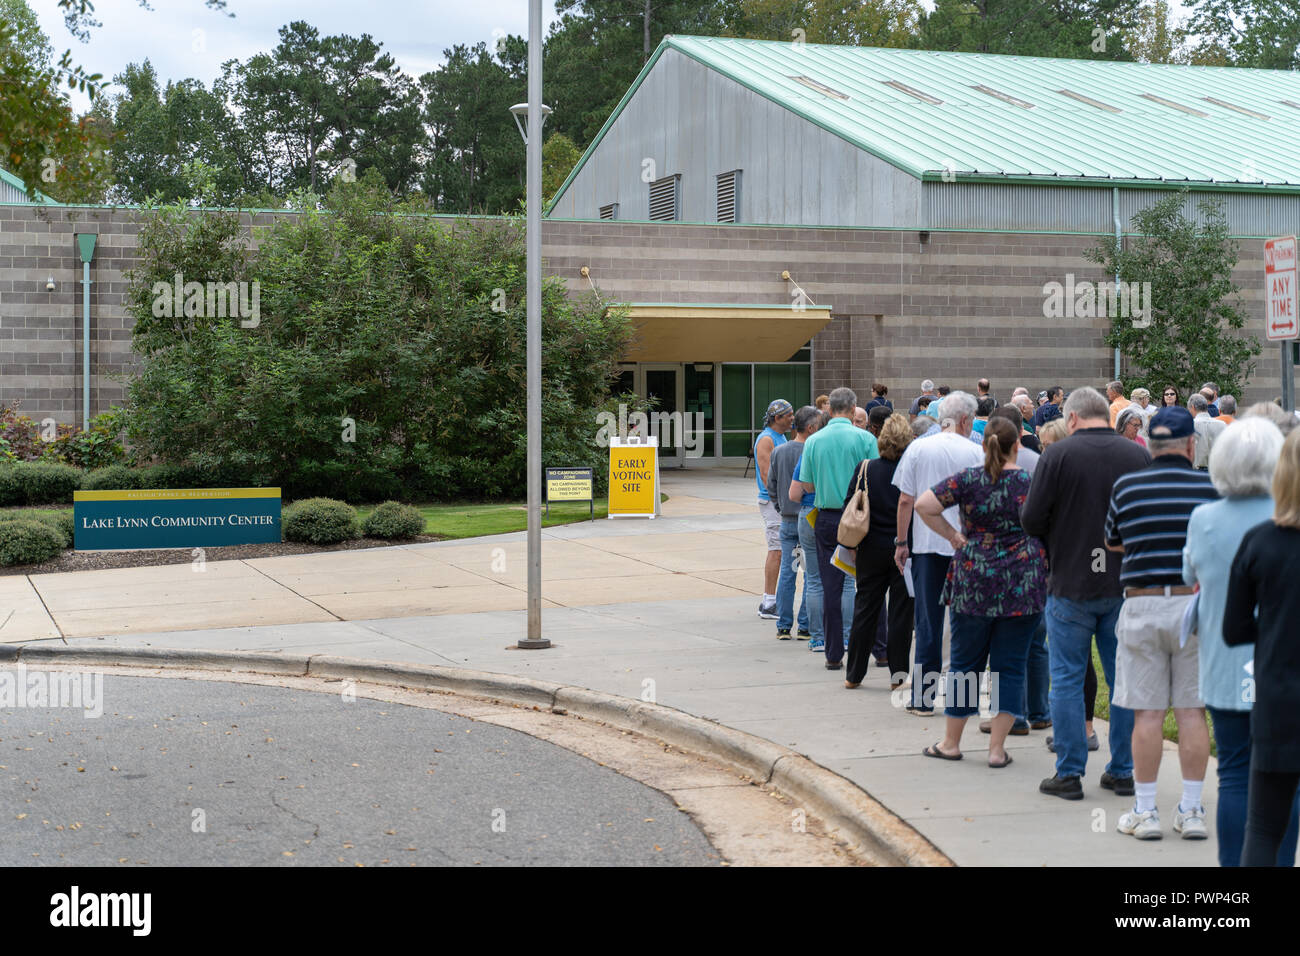 Raleigh, North Carolina, USA. 17th Oct, 2018.  Early voting begins today for 2018 midterm elections, Lake Lynn Community Center. Voters waiting in line to cast their ballot for 2018 midterms. Credit: Michael Reilly/Alamy Live News - Stock Image